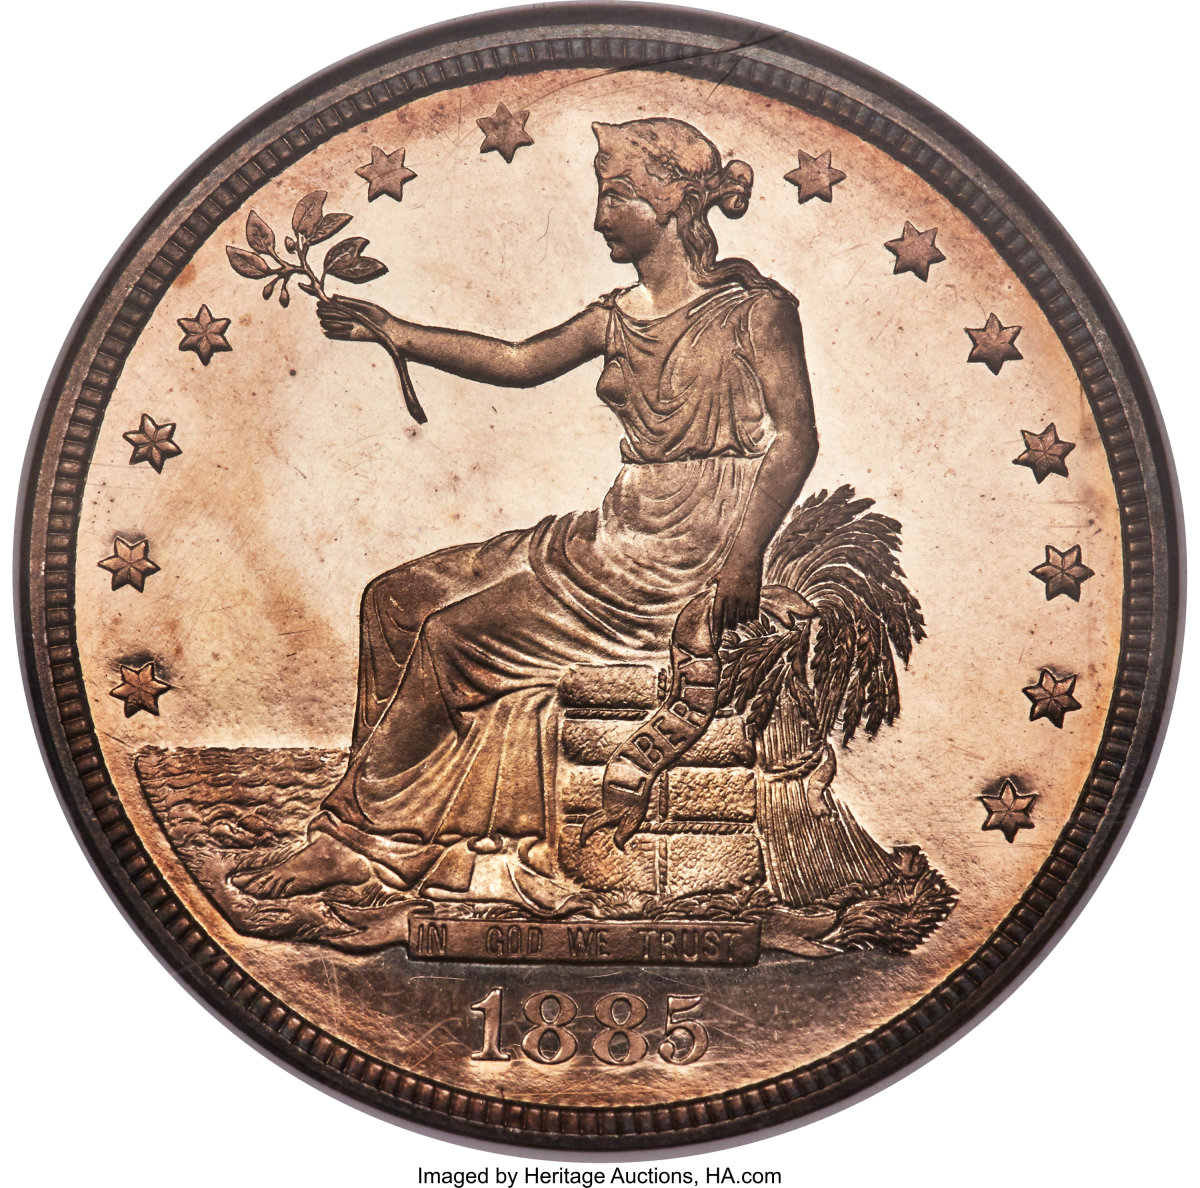 The most valuable U.S. rare coin sold in 2019 was a proof 1885 silver Trade dollar, graded NGC PR66, that sold for a record $3.96 million by Heritage Auctions. Heritage sold a total of $181.3 million of U.S. rare coins at auctions last year. The reverse of this coin is shown below.